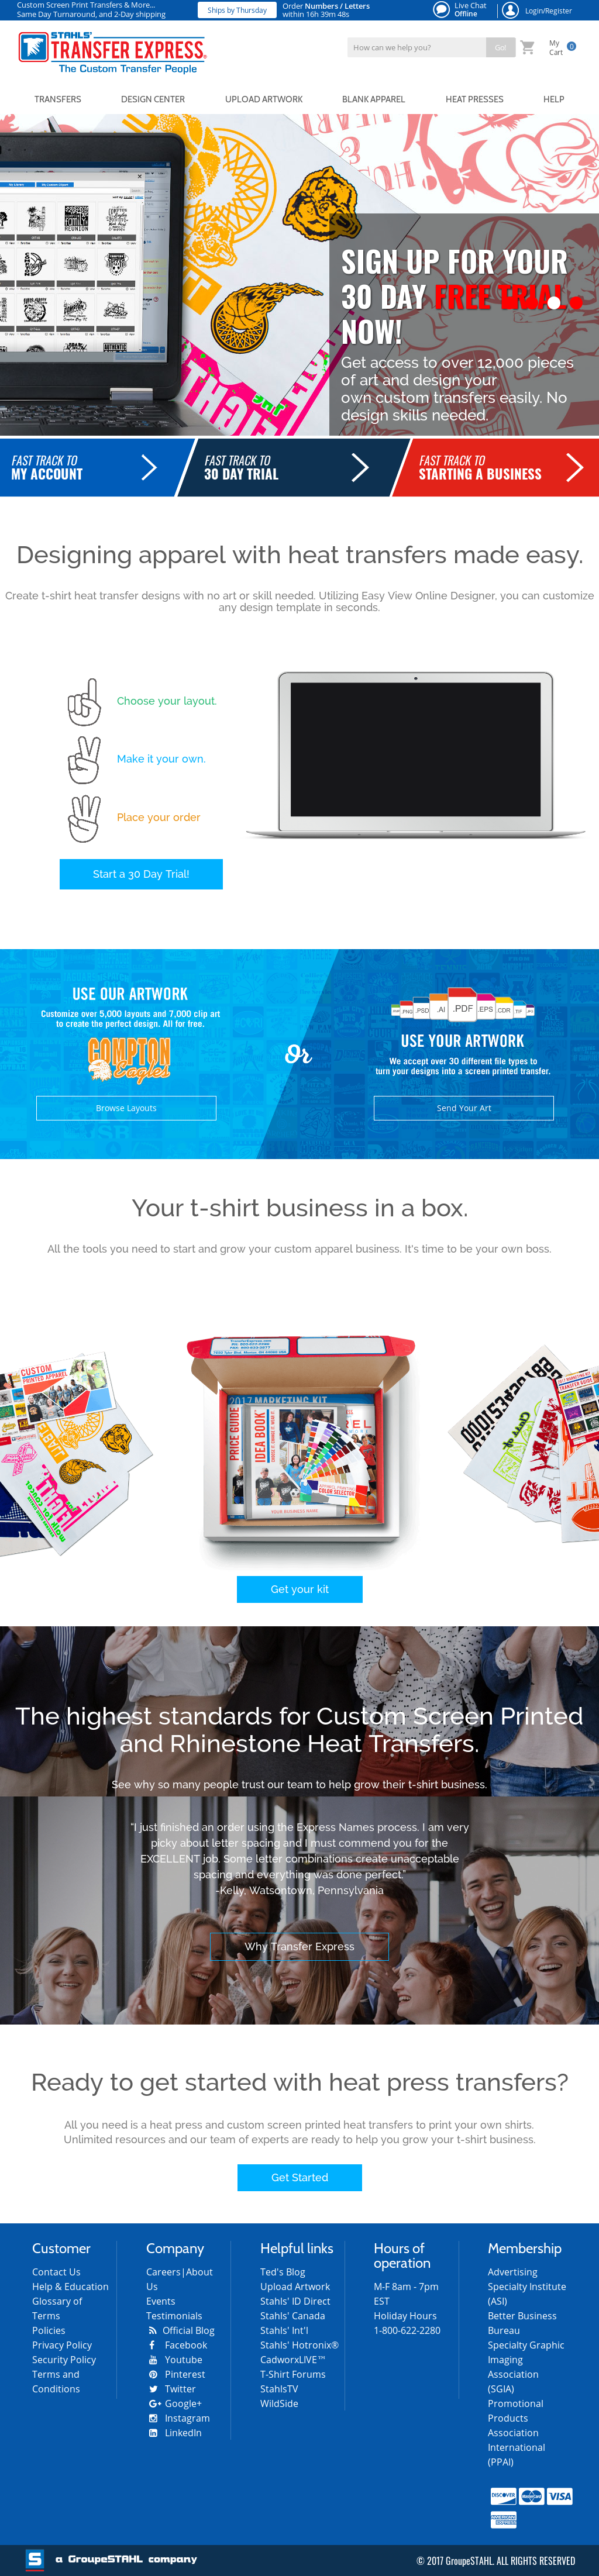 Tshirt Business With No Money Pdf